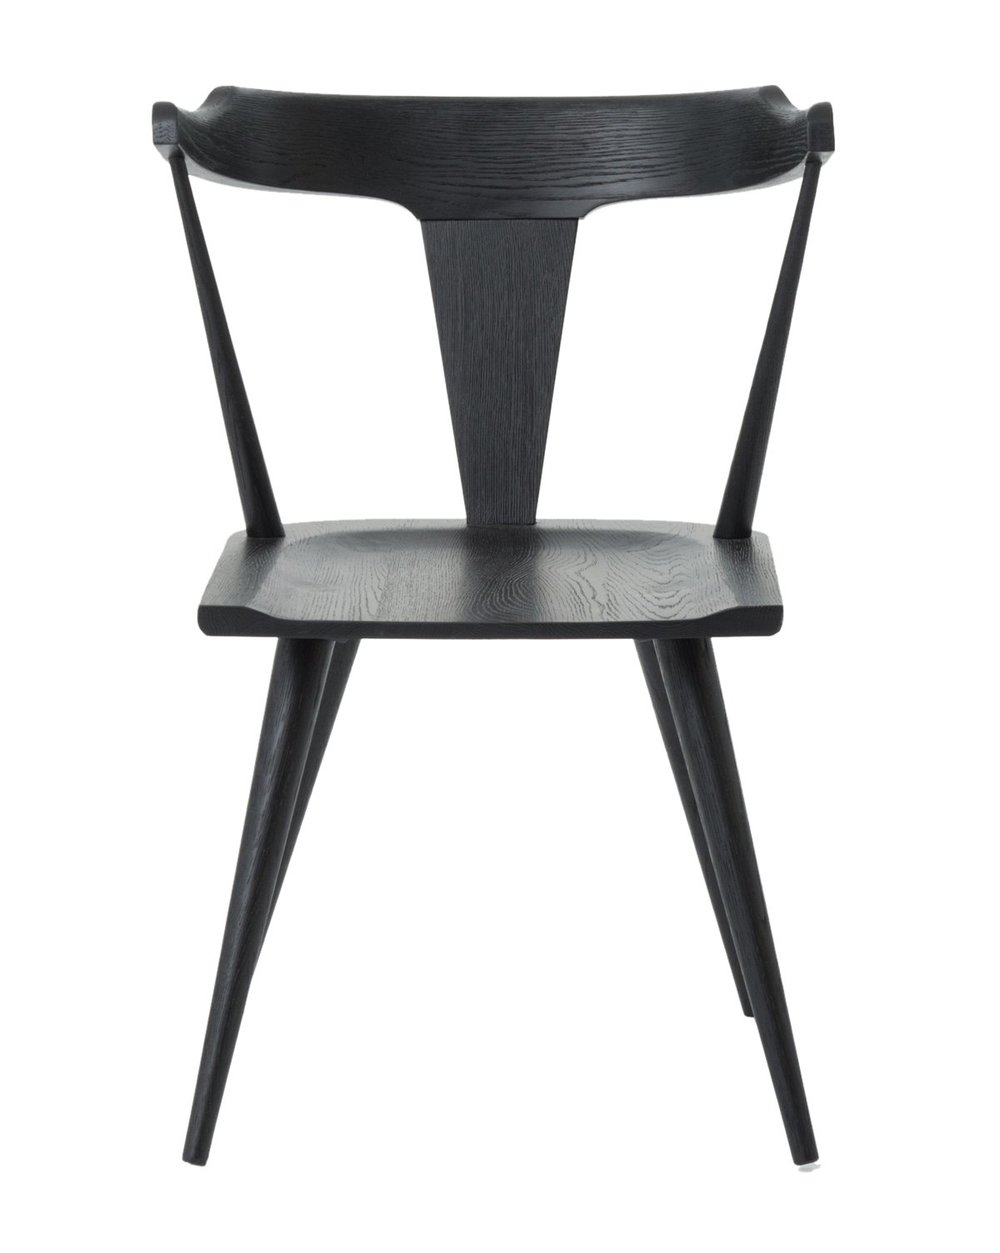 Ruthie_Dining_Chair_7_f042cfb3-201d-4365-9be7-79d5fa52fea2.jpg